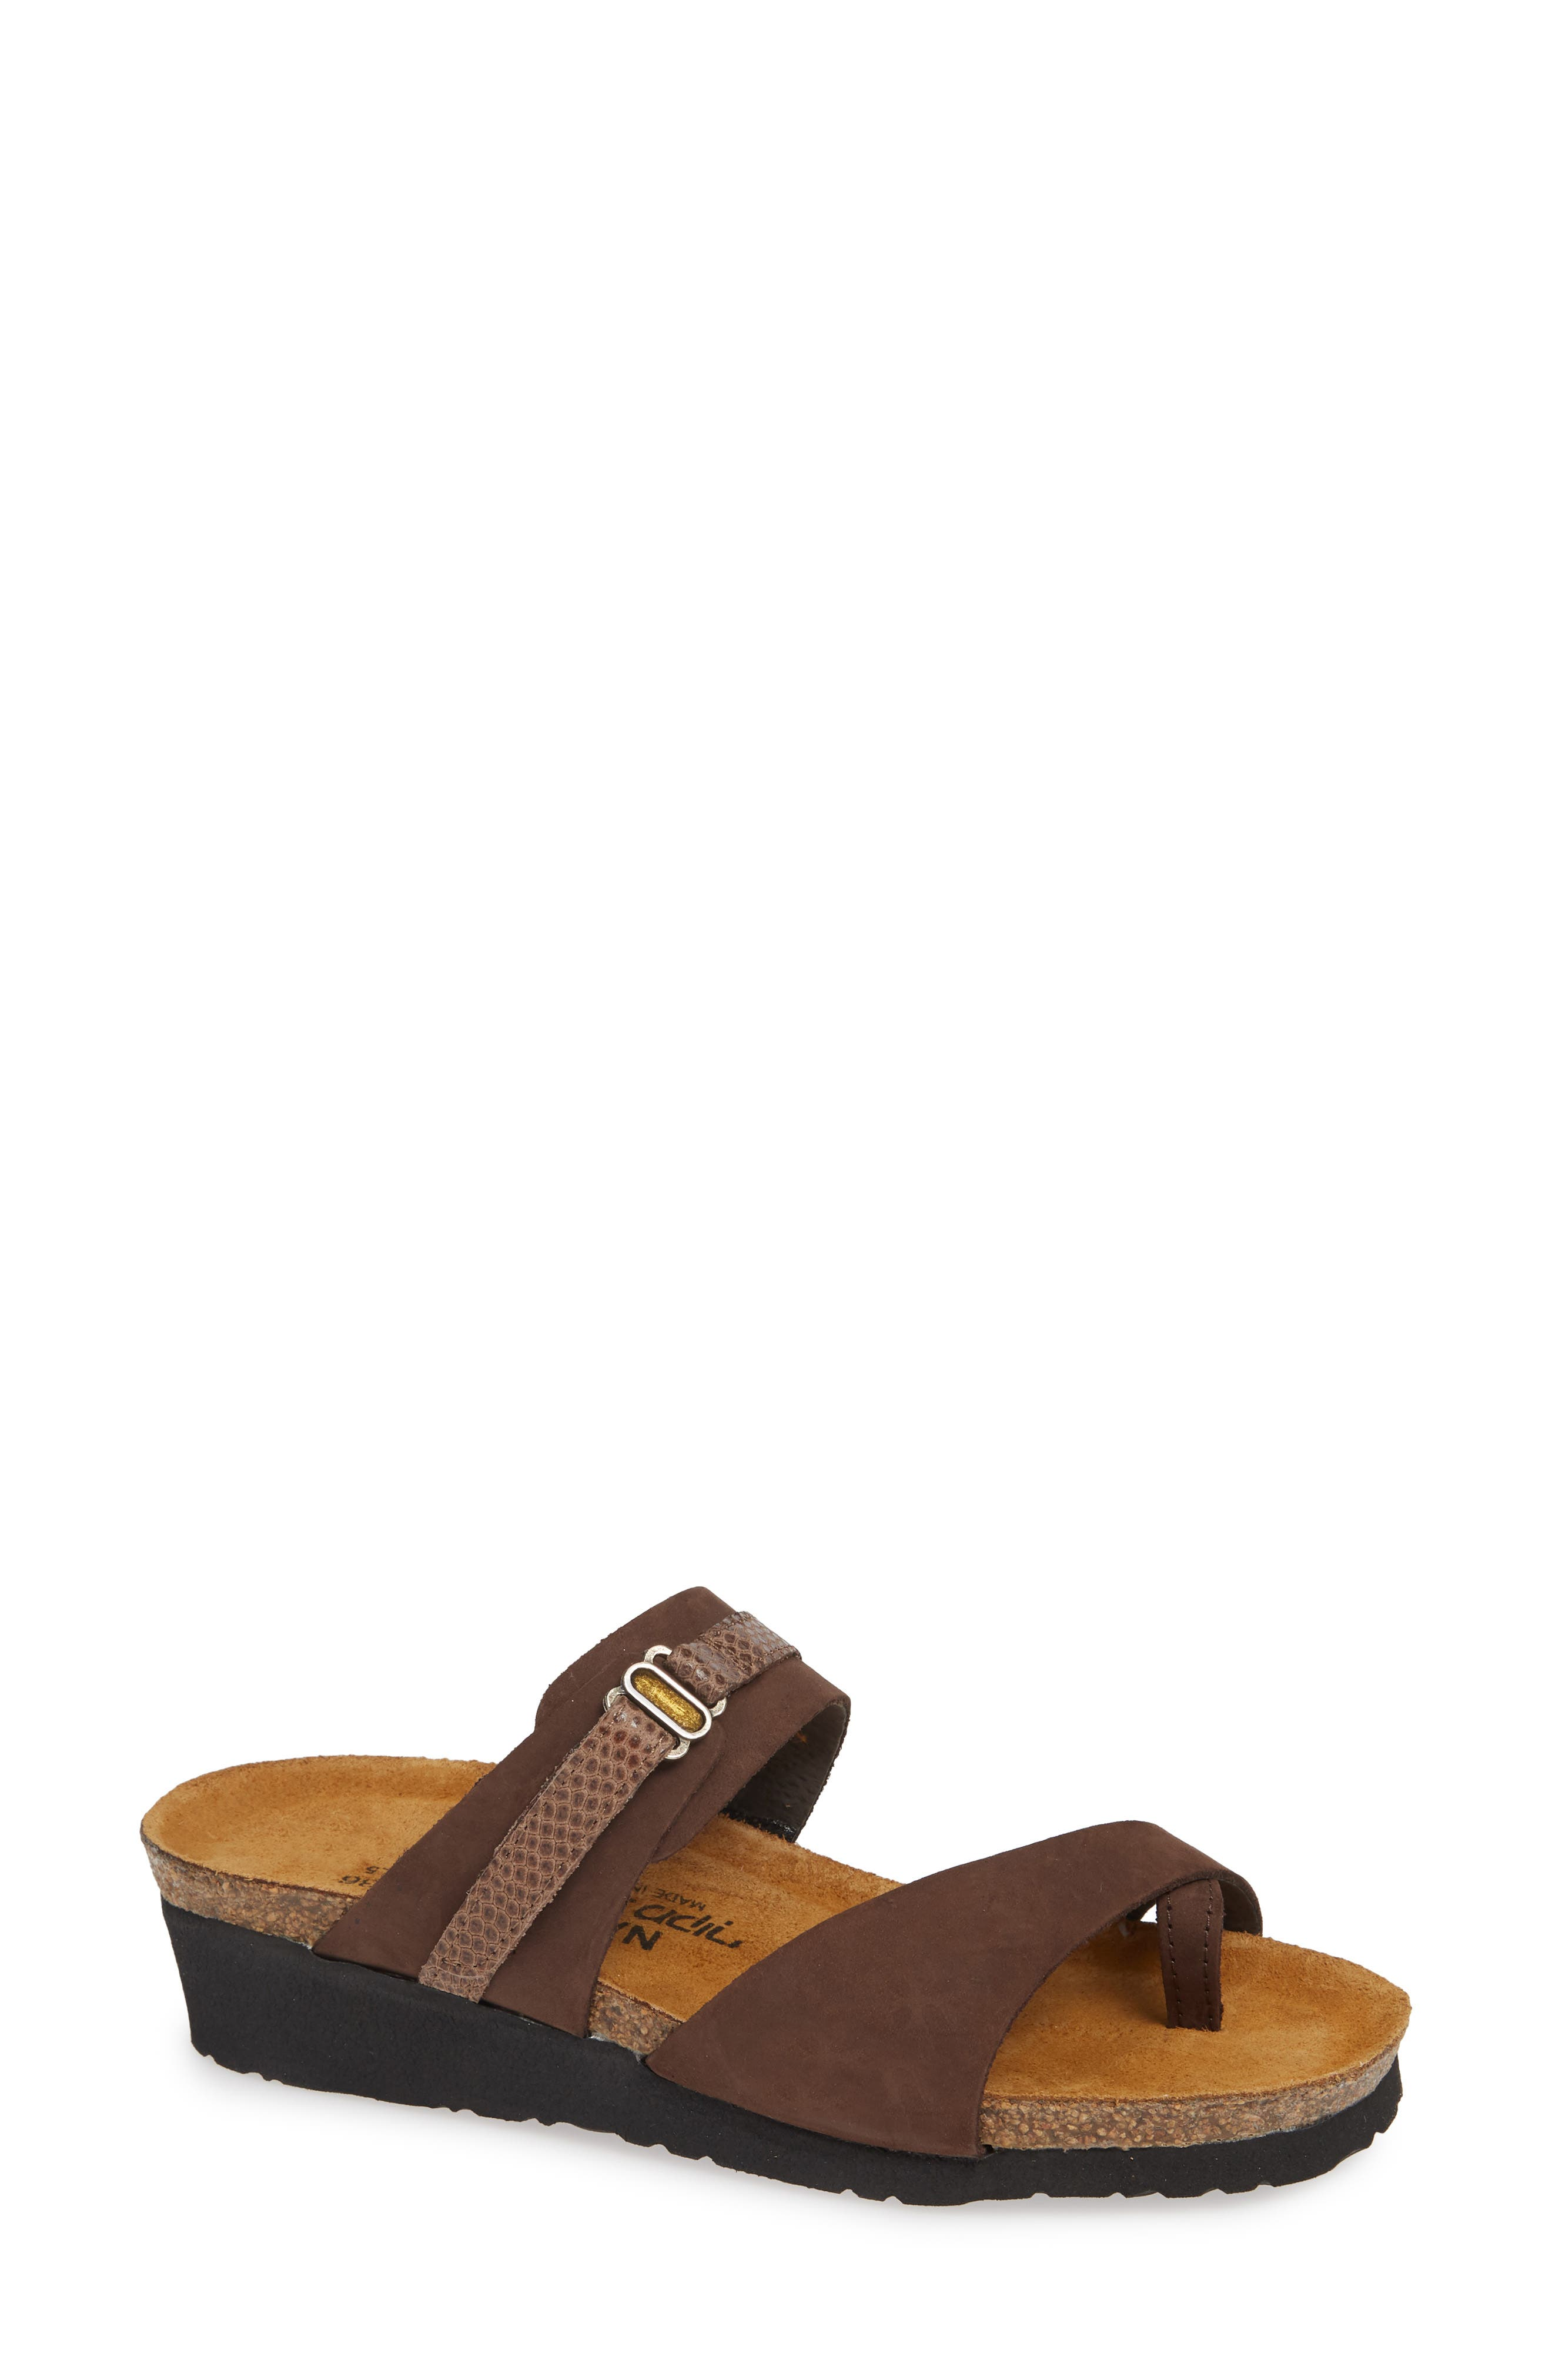 Jessica Sandal,                         Main,                         color, COFFEE BEAN NUBUCK LEATHER